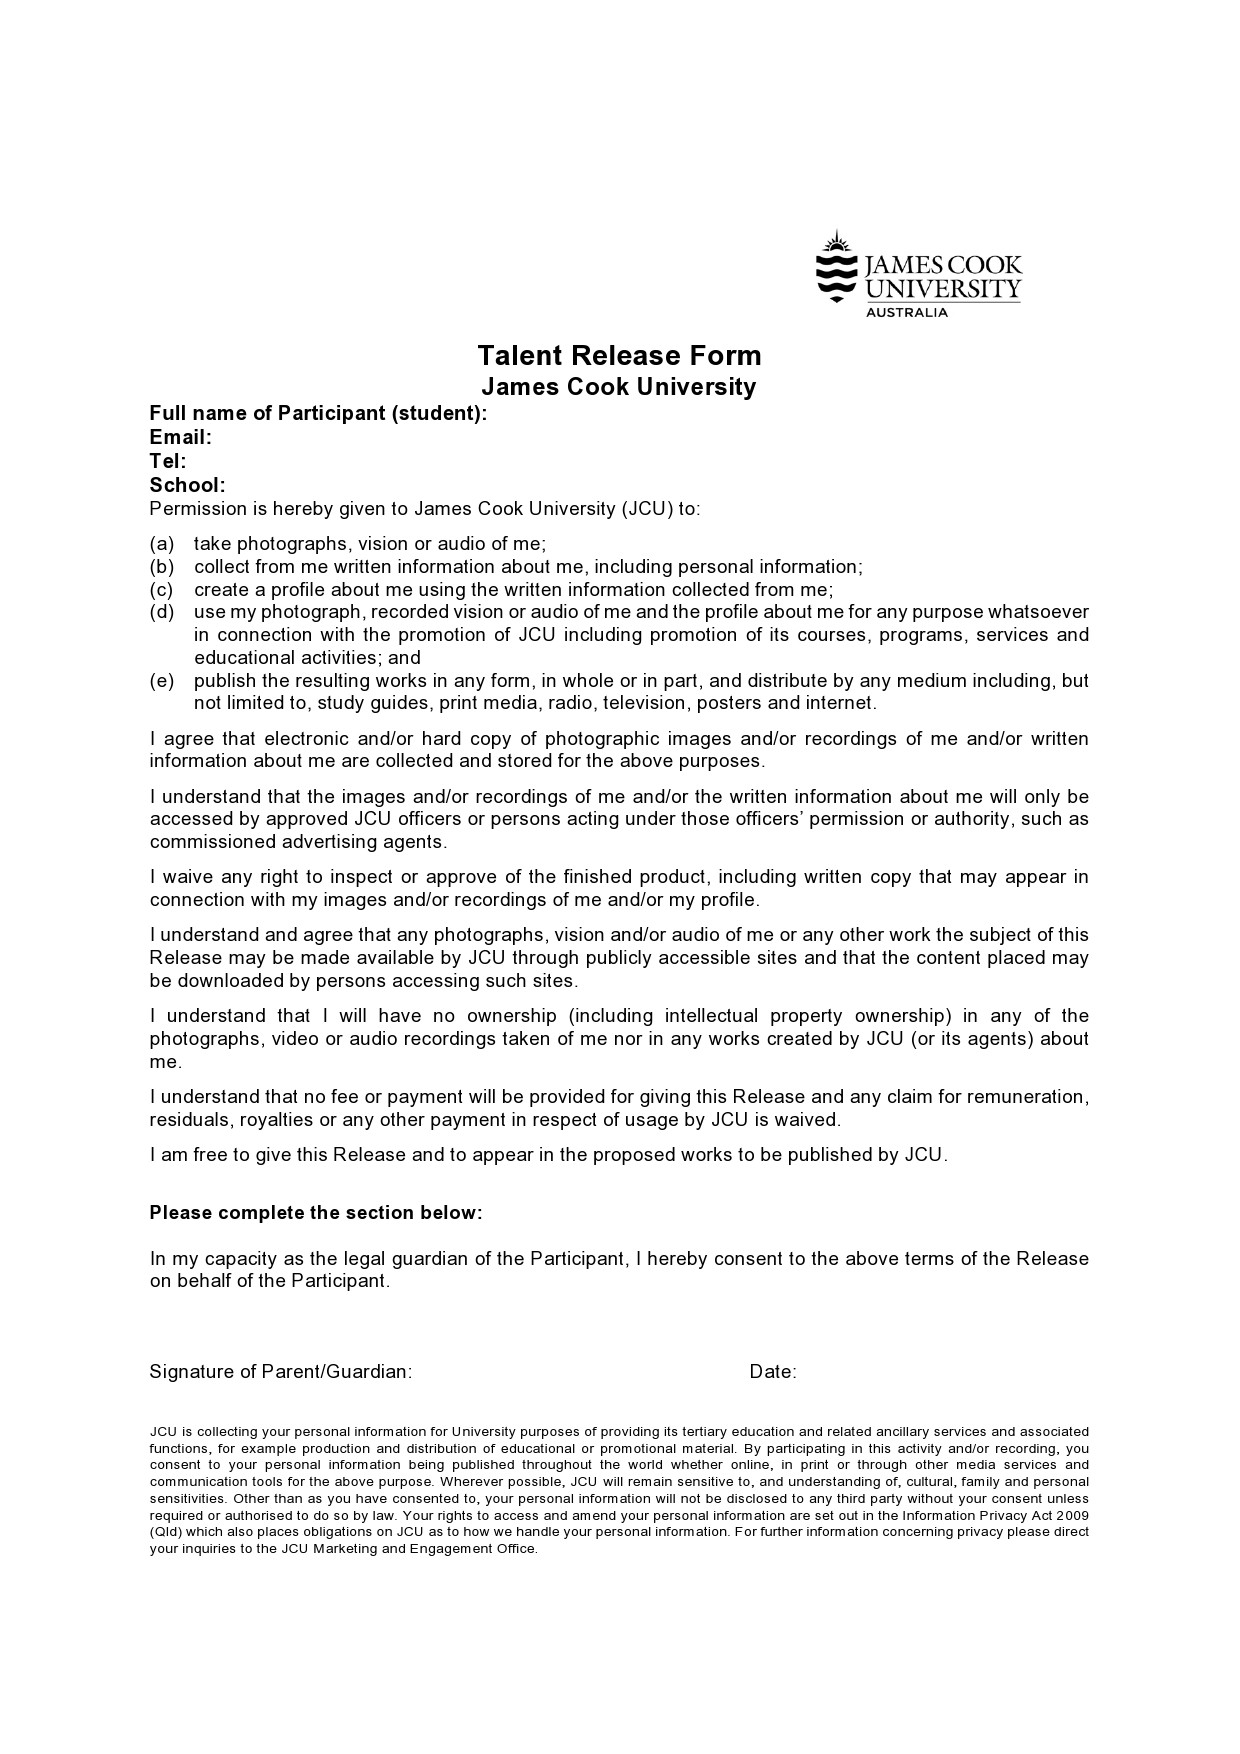 Free talent release form 07